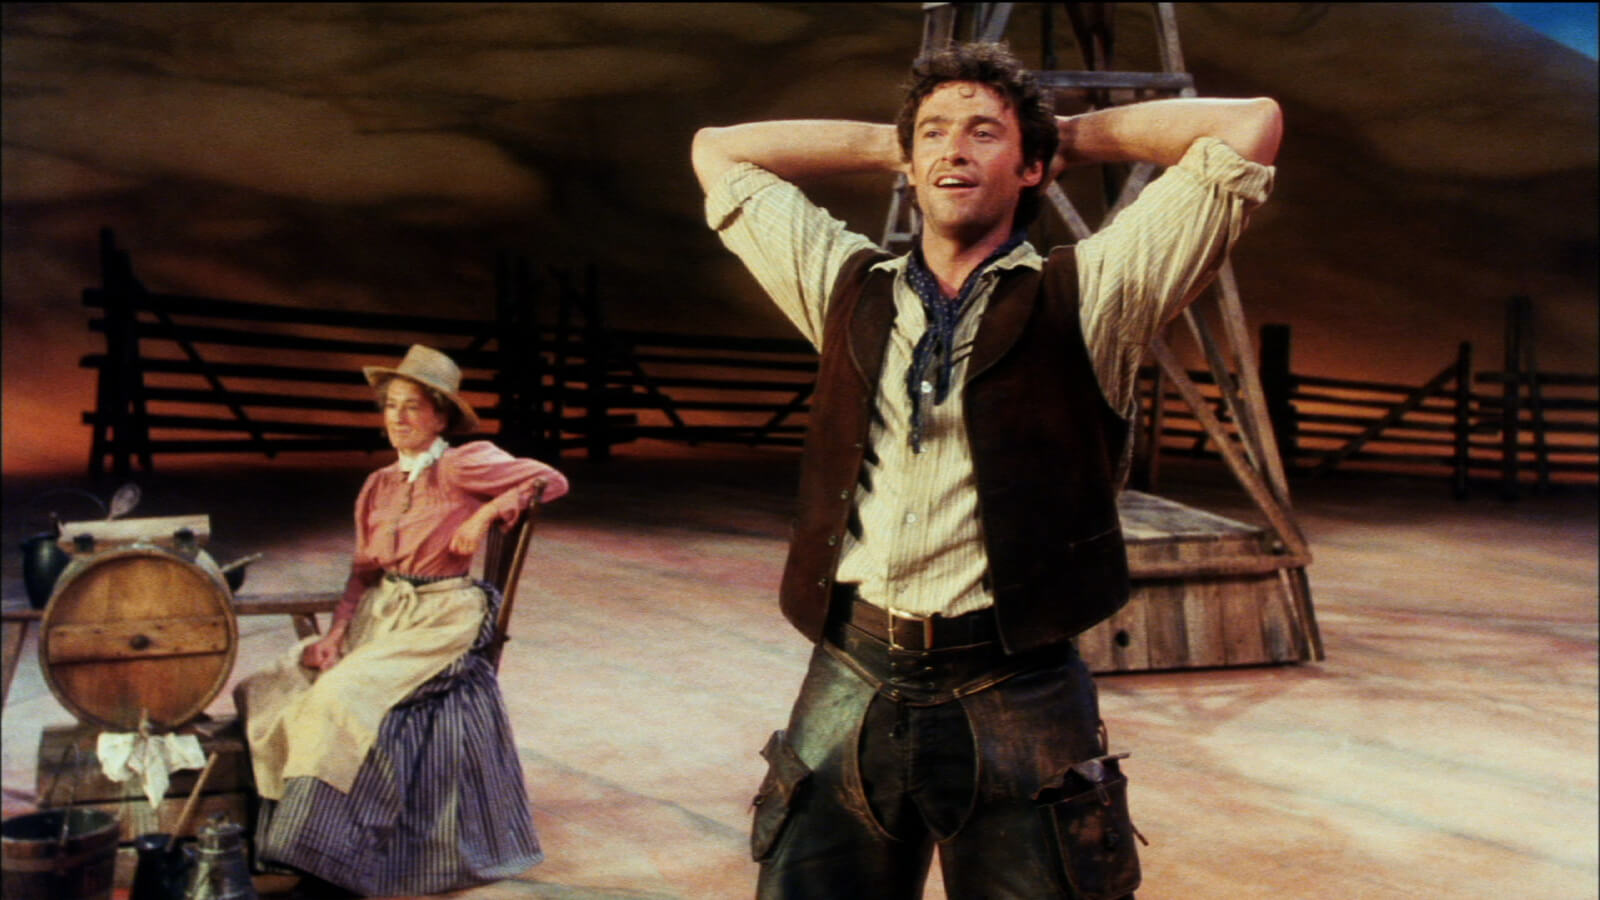 Hugh Jackman in a cowboy outfit, doing a stretch, in the middle of the desert. A woman with apron and hat is sitting behind him, watching over the barrels.